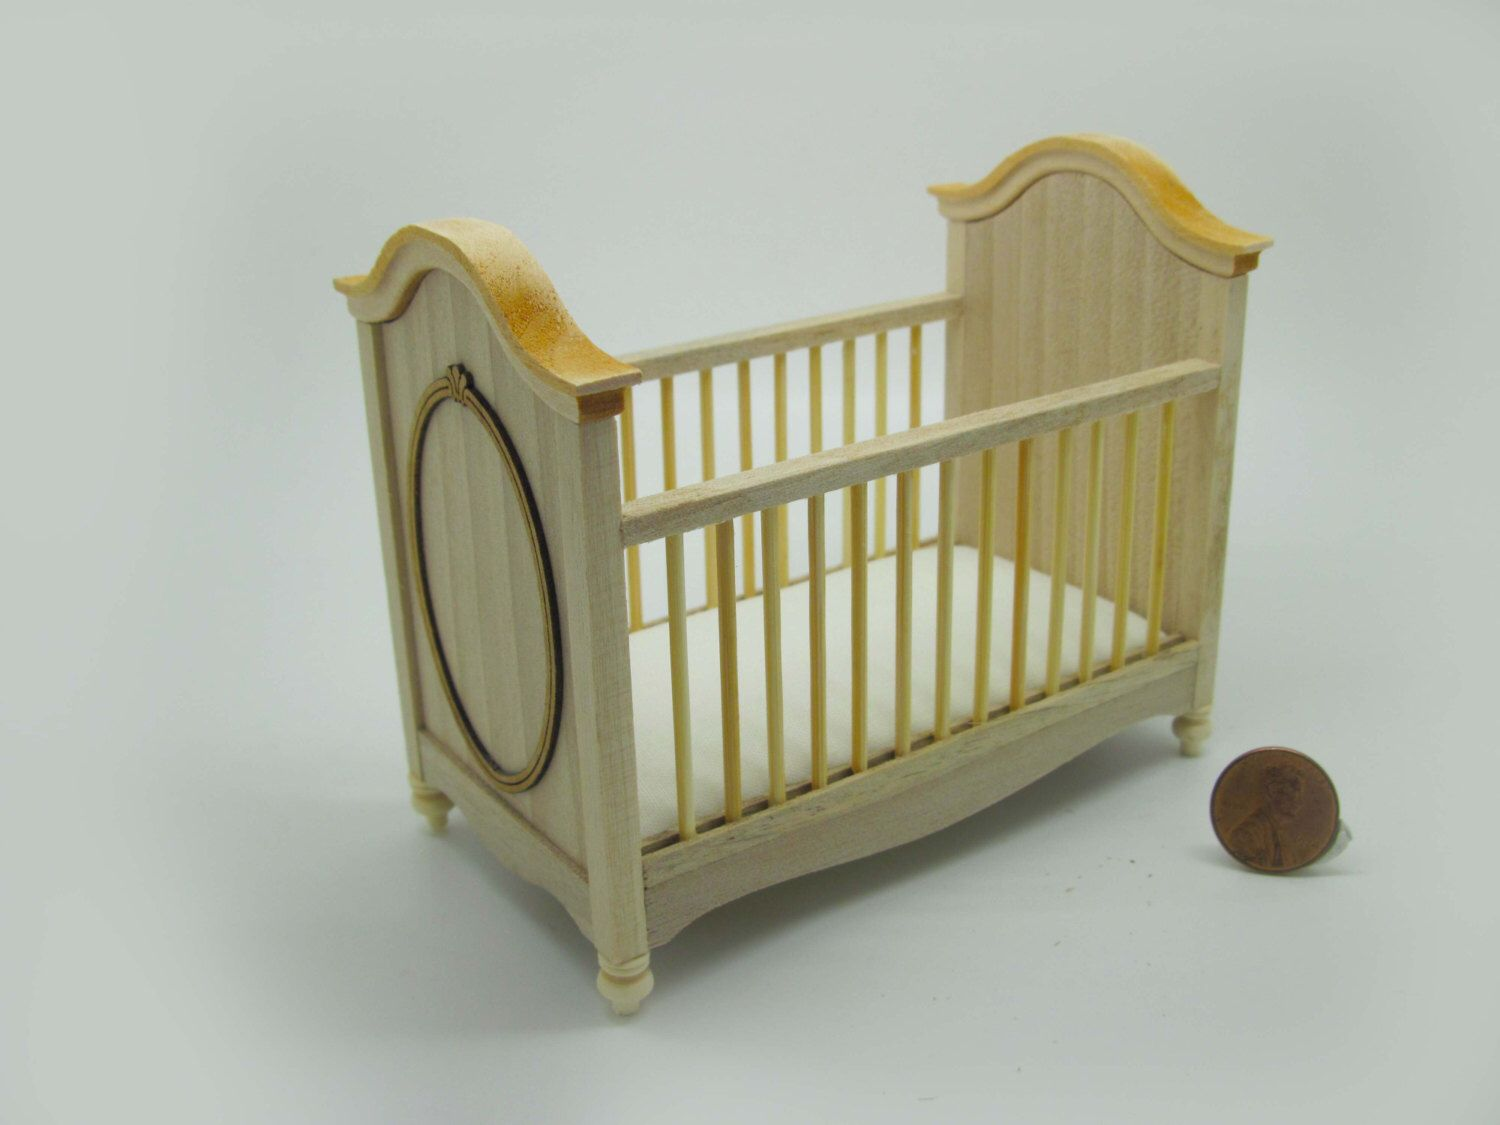 Attractive Unfinished Dollhouse Furniture. Miniature Dollhouse Furniture Unfinished  Cot   Code Vmj 1104 By Viliaminiature On